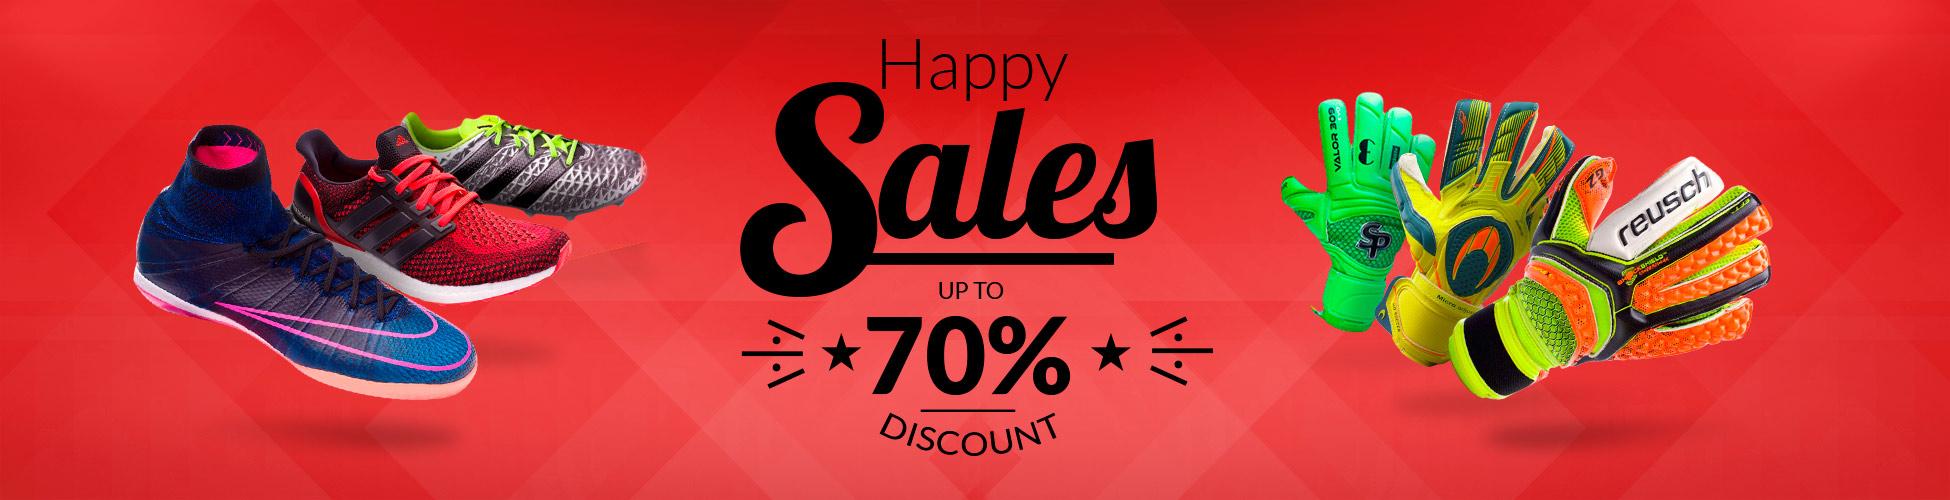 HAPPY SALES EN